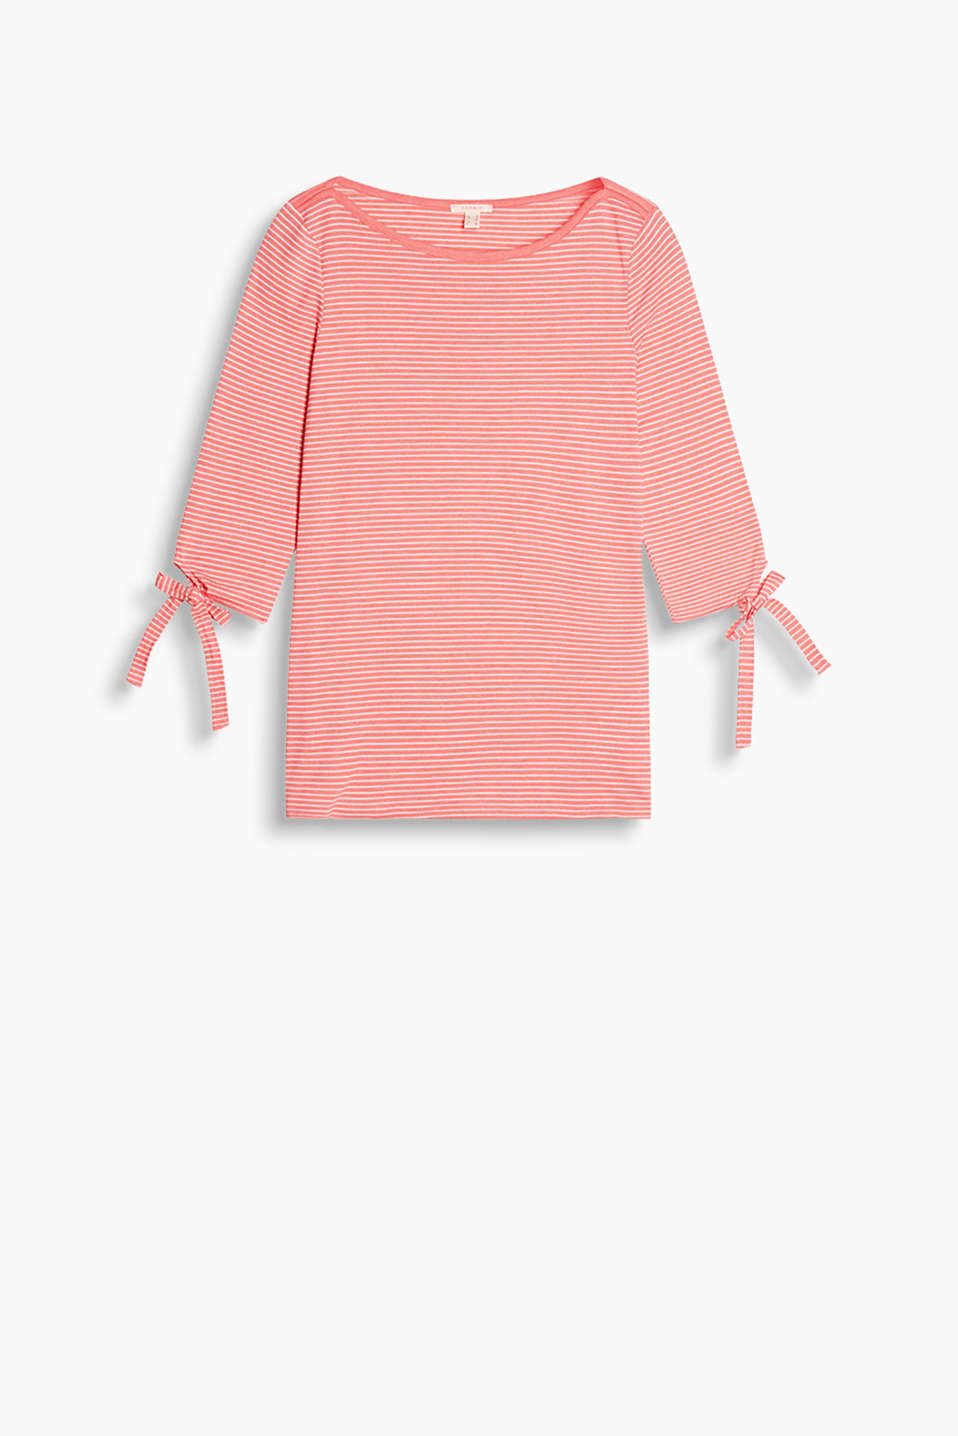 Slightly fitted, striped T-shirt with embellished three-quarter length sleeves